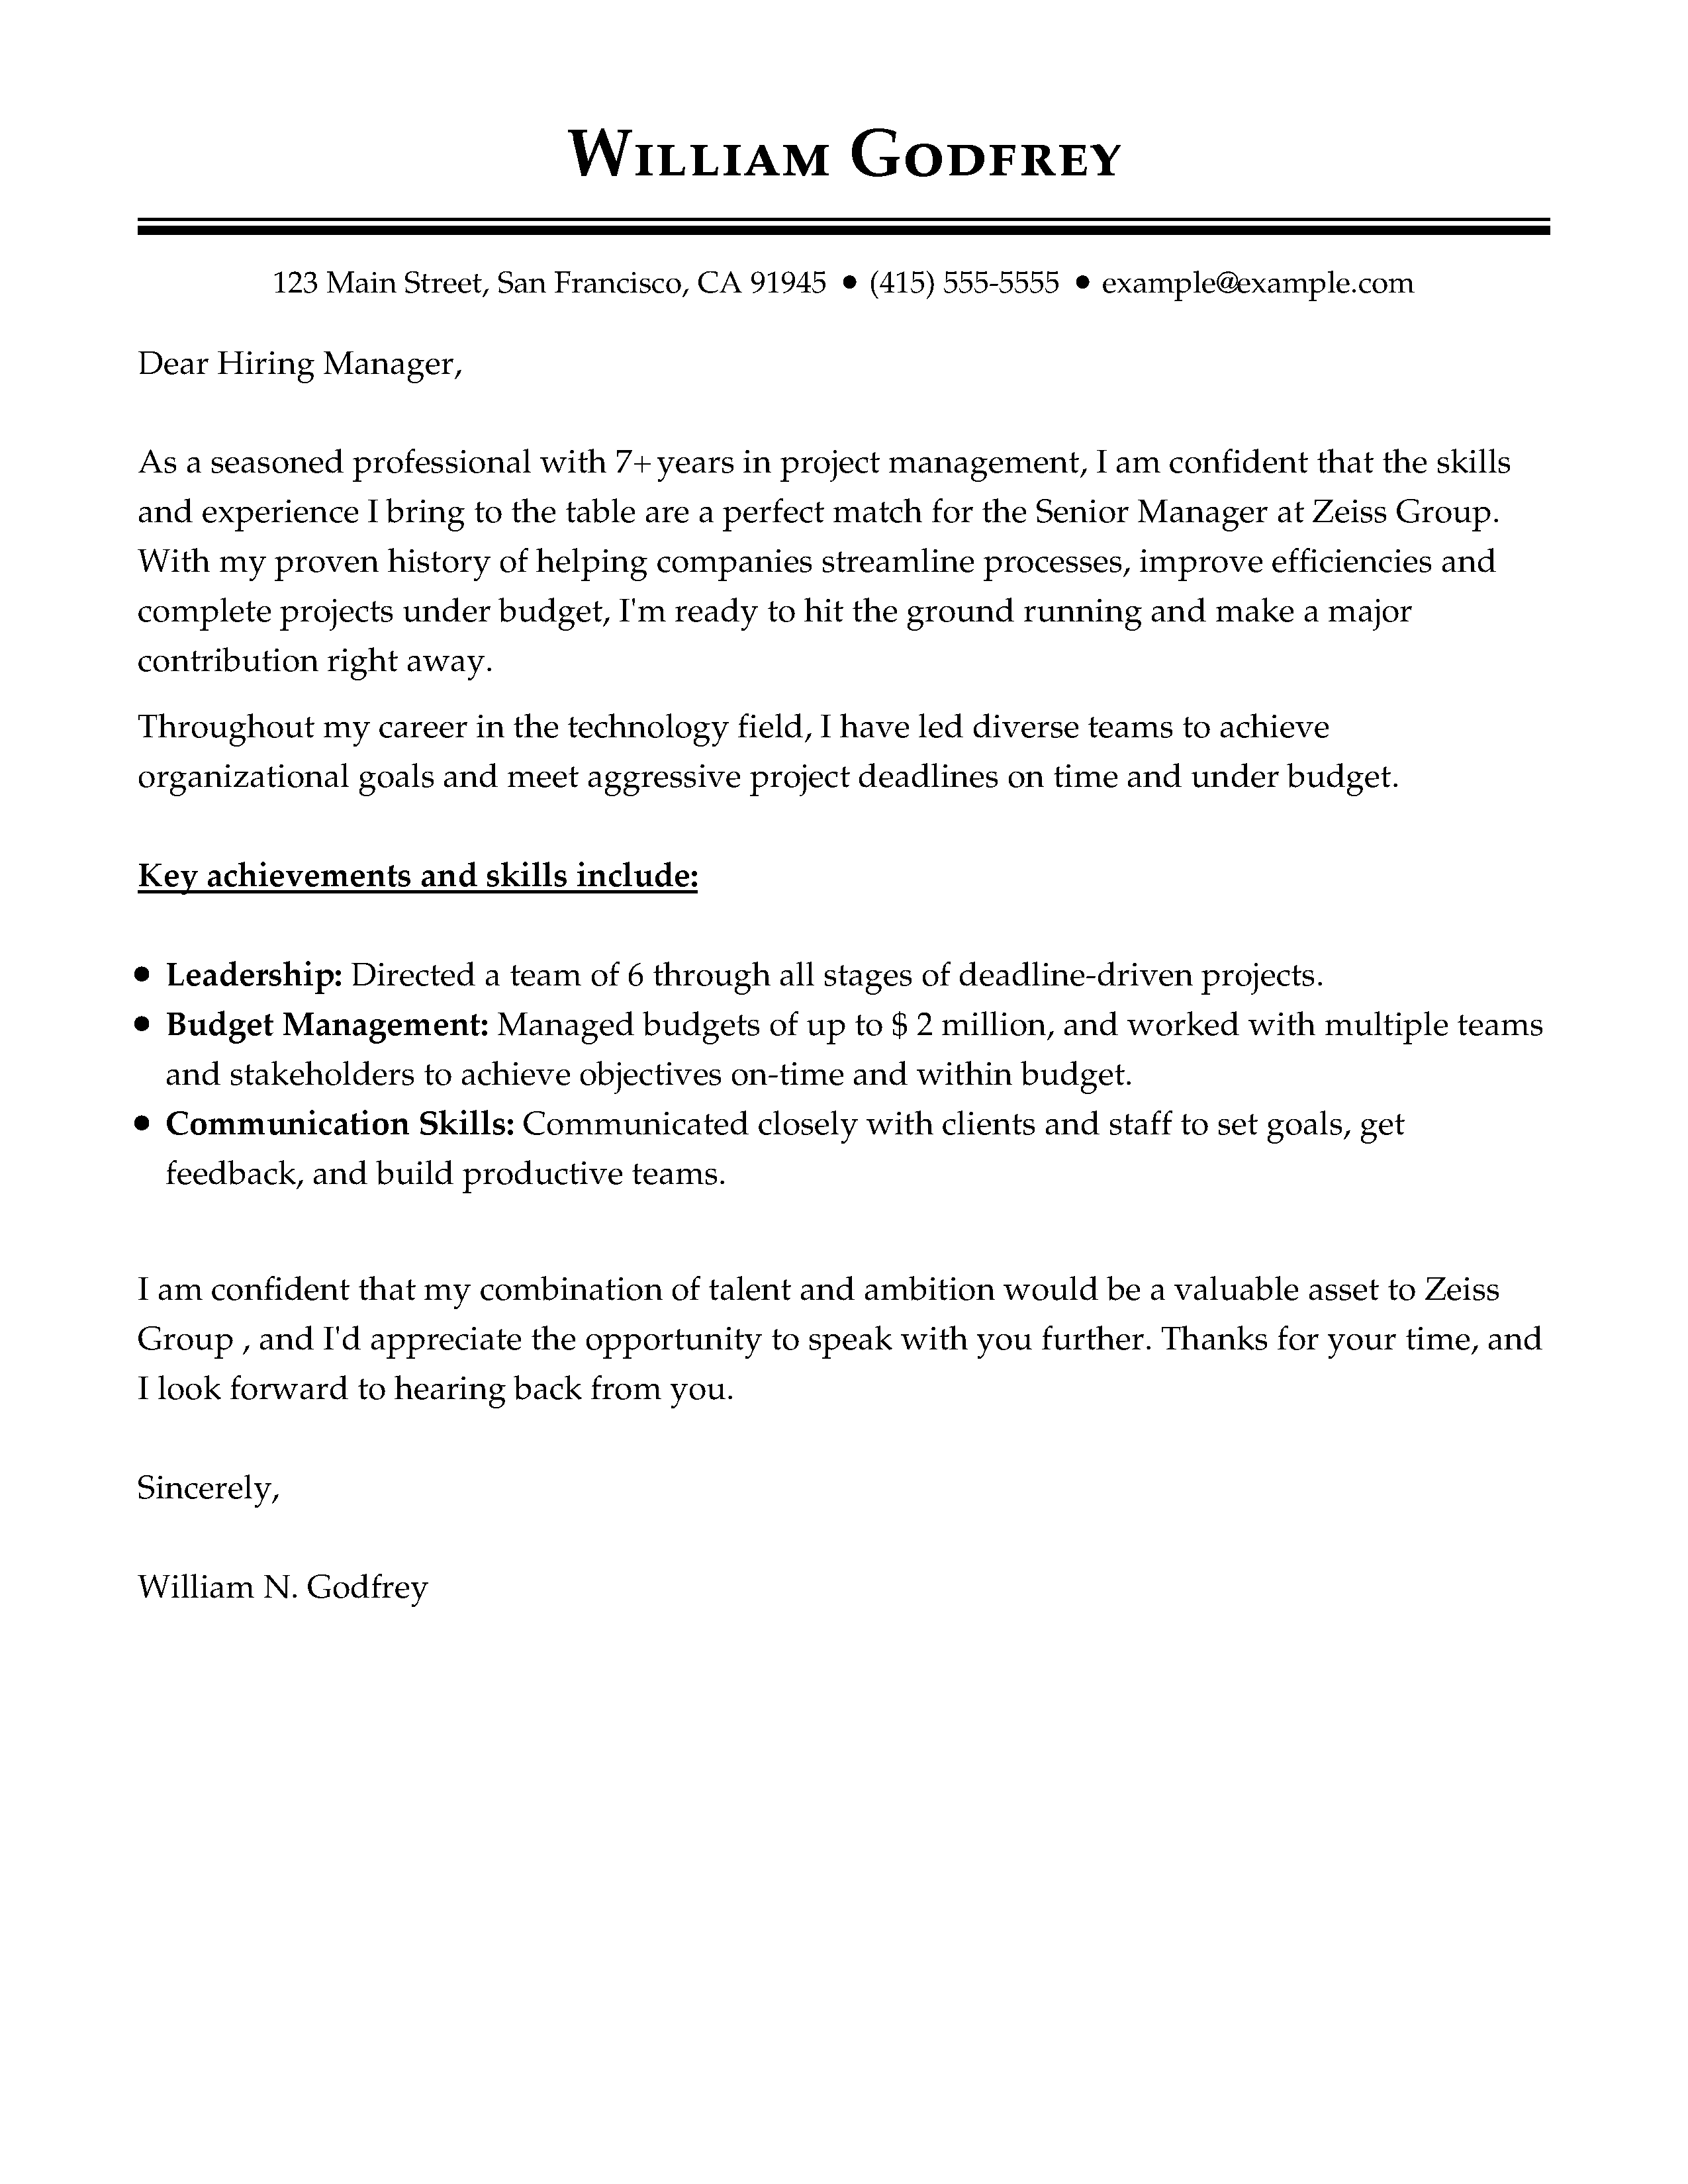 Cover Letter Templates My Perfect Cover Letter